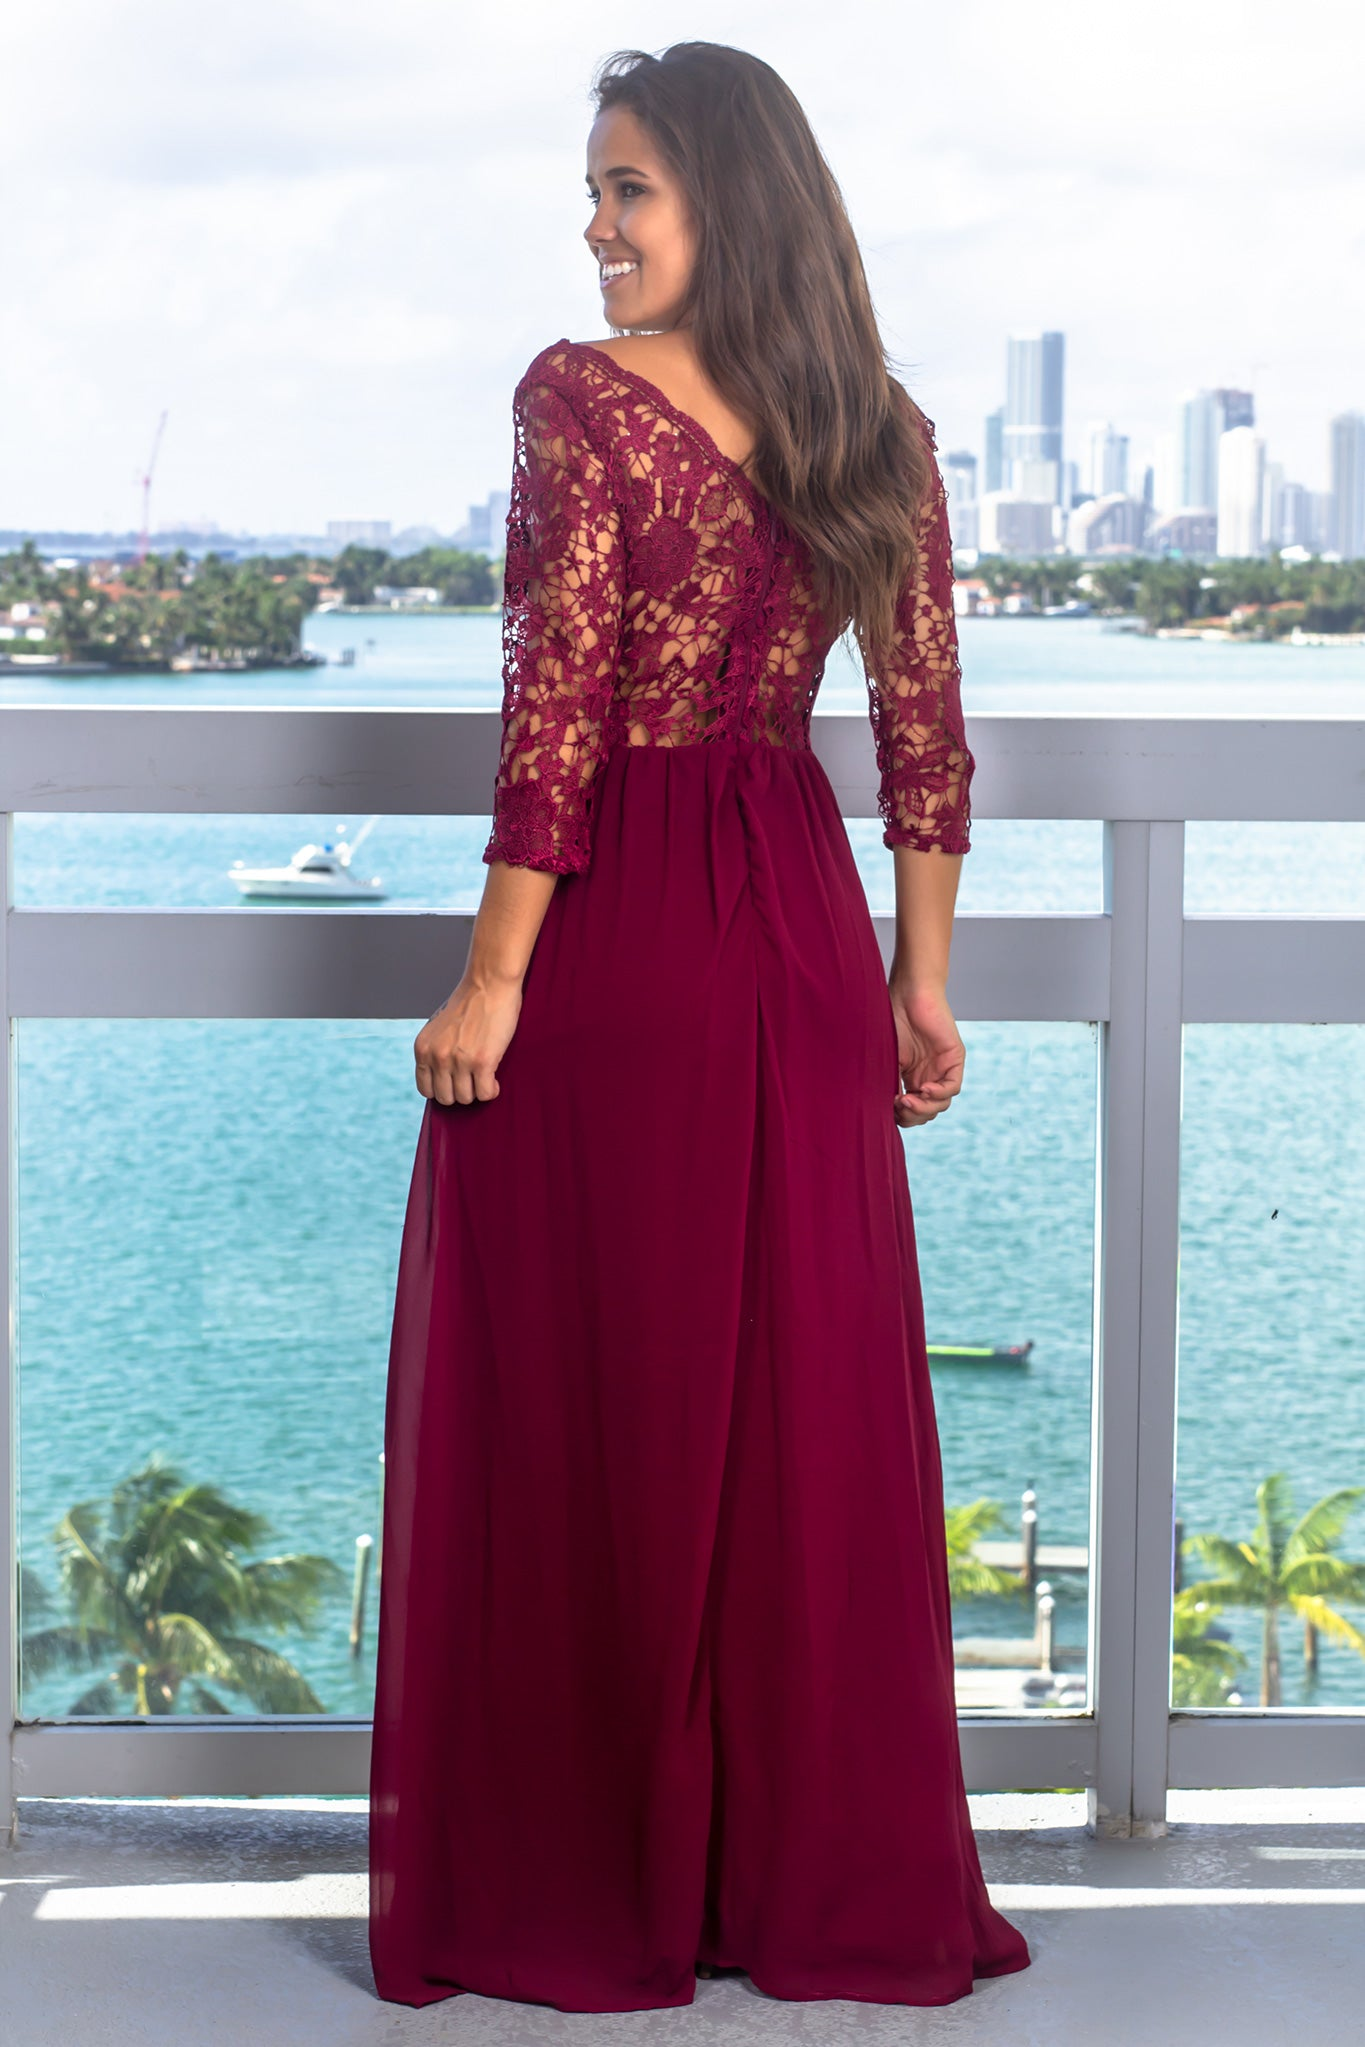 Merlot Embroidered Top Maxi Dress with 3/4 Sleeves